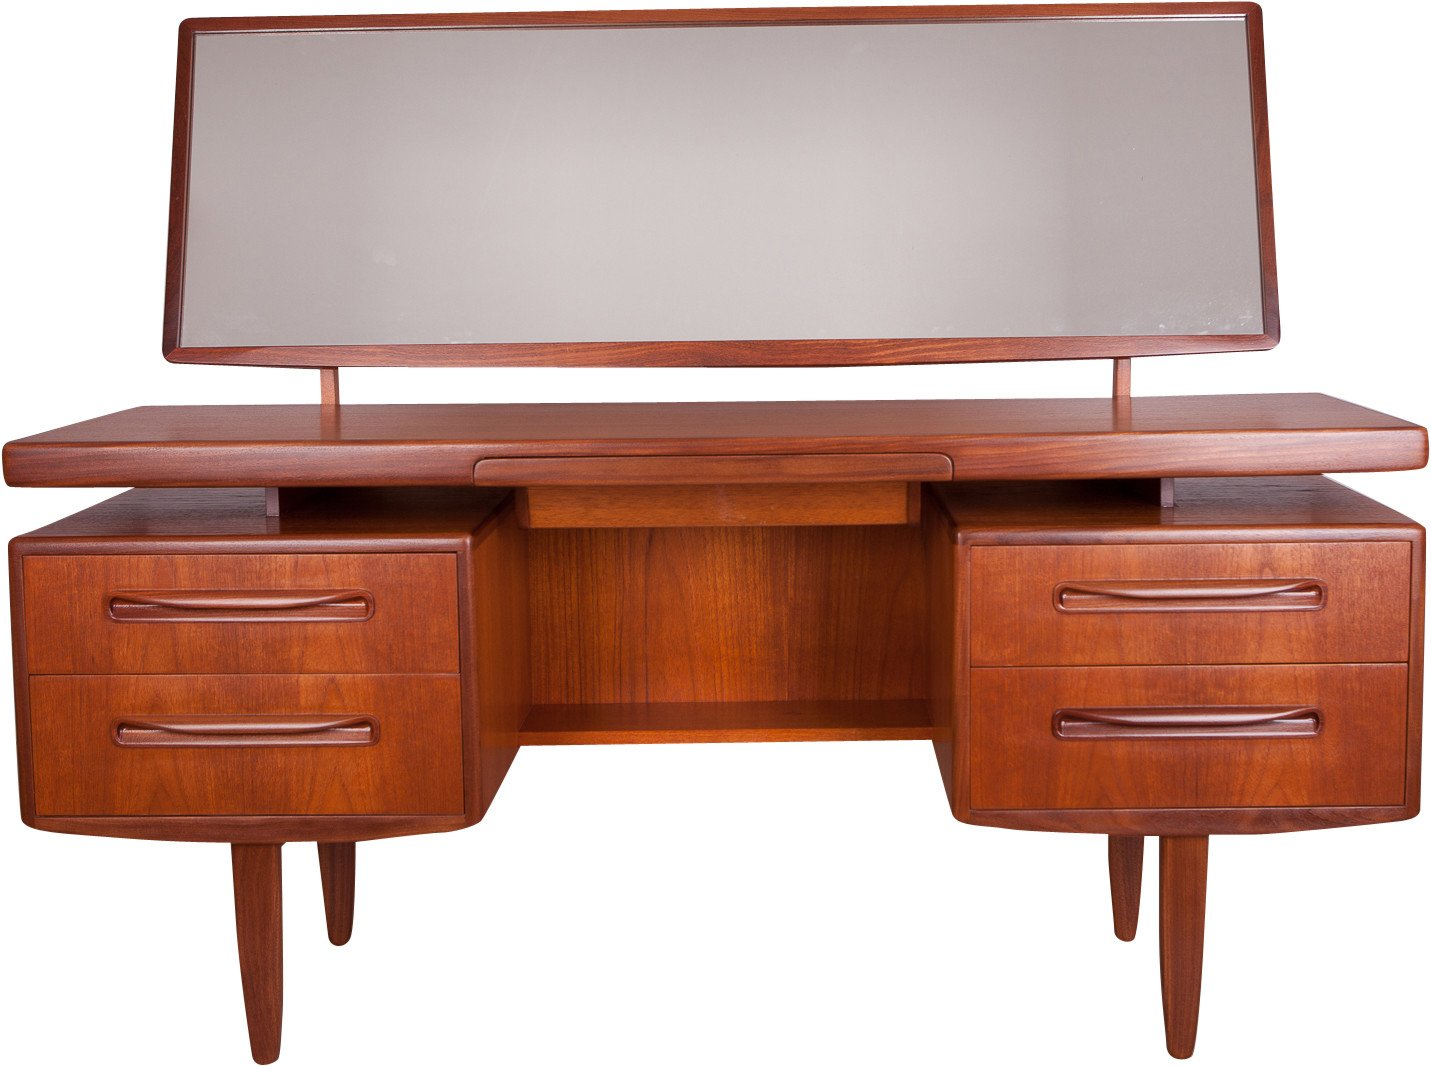 Dressing Table by V. Wilkins for G-Plan, United Kingdom, 1960s